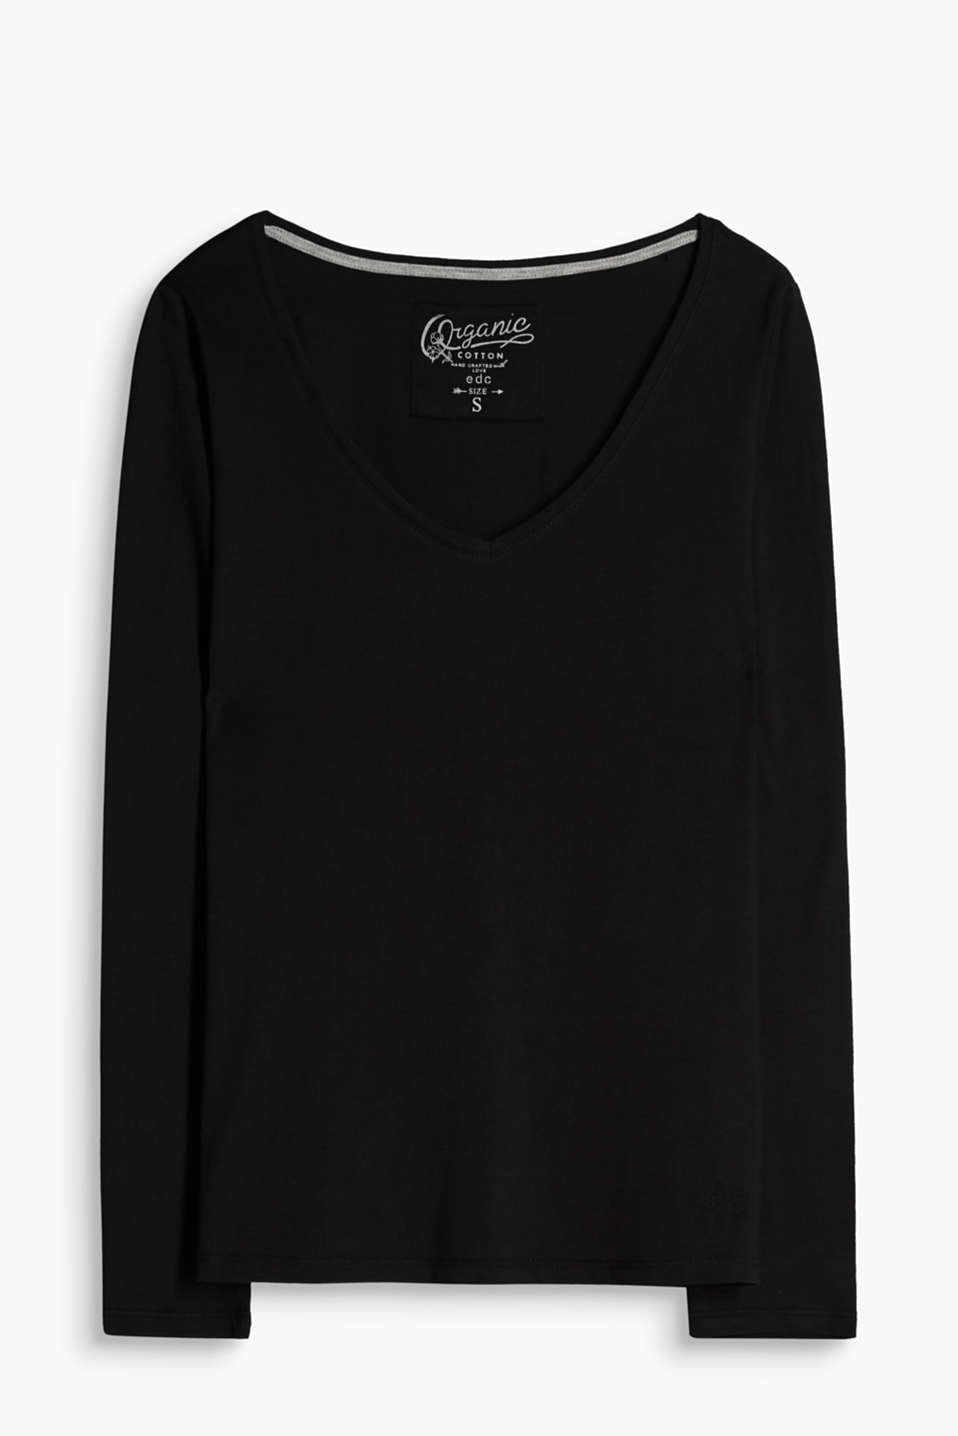 This jersey long sleeve top in pure organic cotton is a sustainable fashion essential